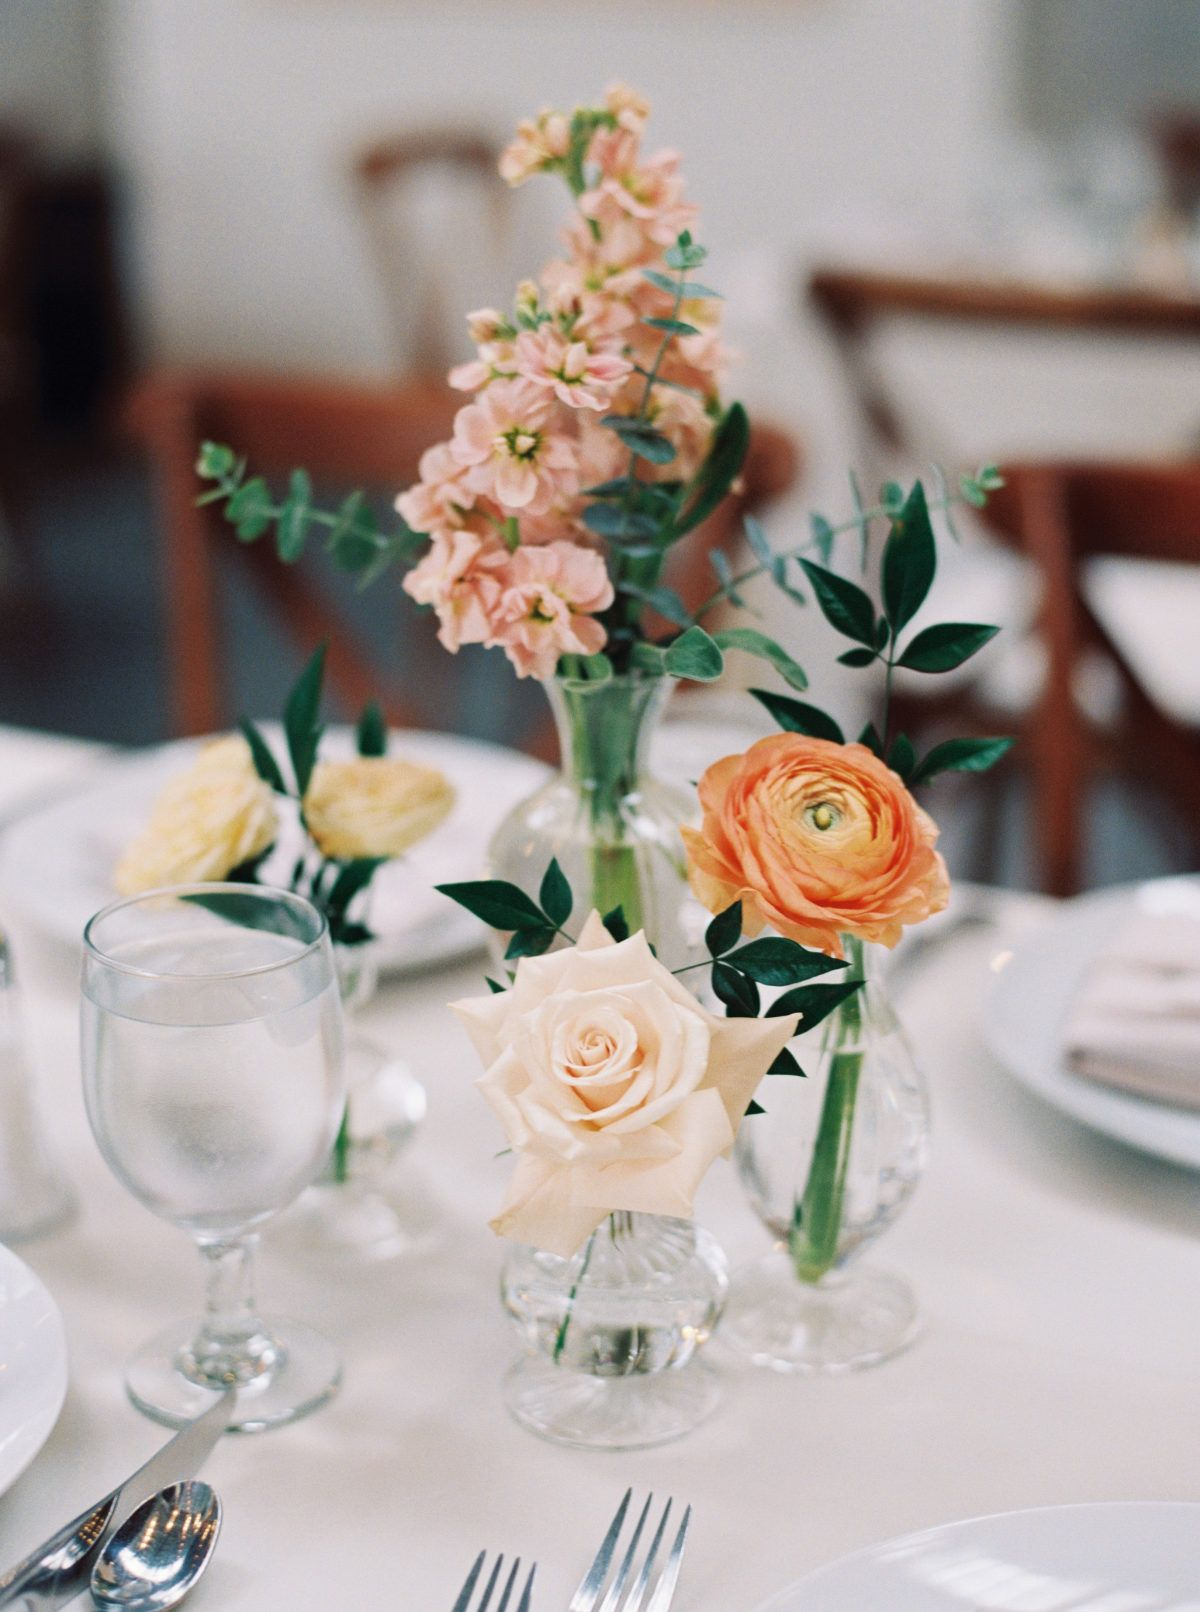 Modern Meets Garden At A San Diego Museum Photography Meiwen Wang Videography Etcetera Productions Coordi Bud Vases Wedding Bud Vase Centerpiece Wedding Vases